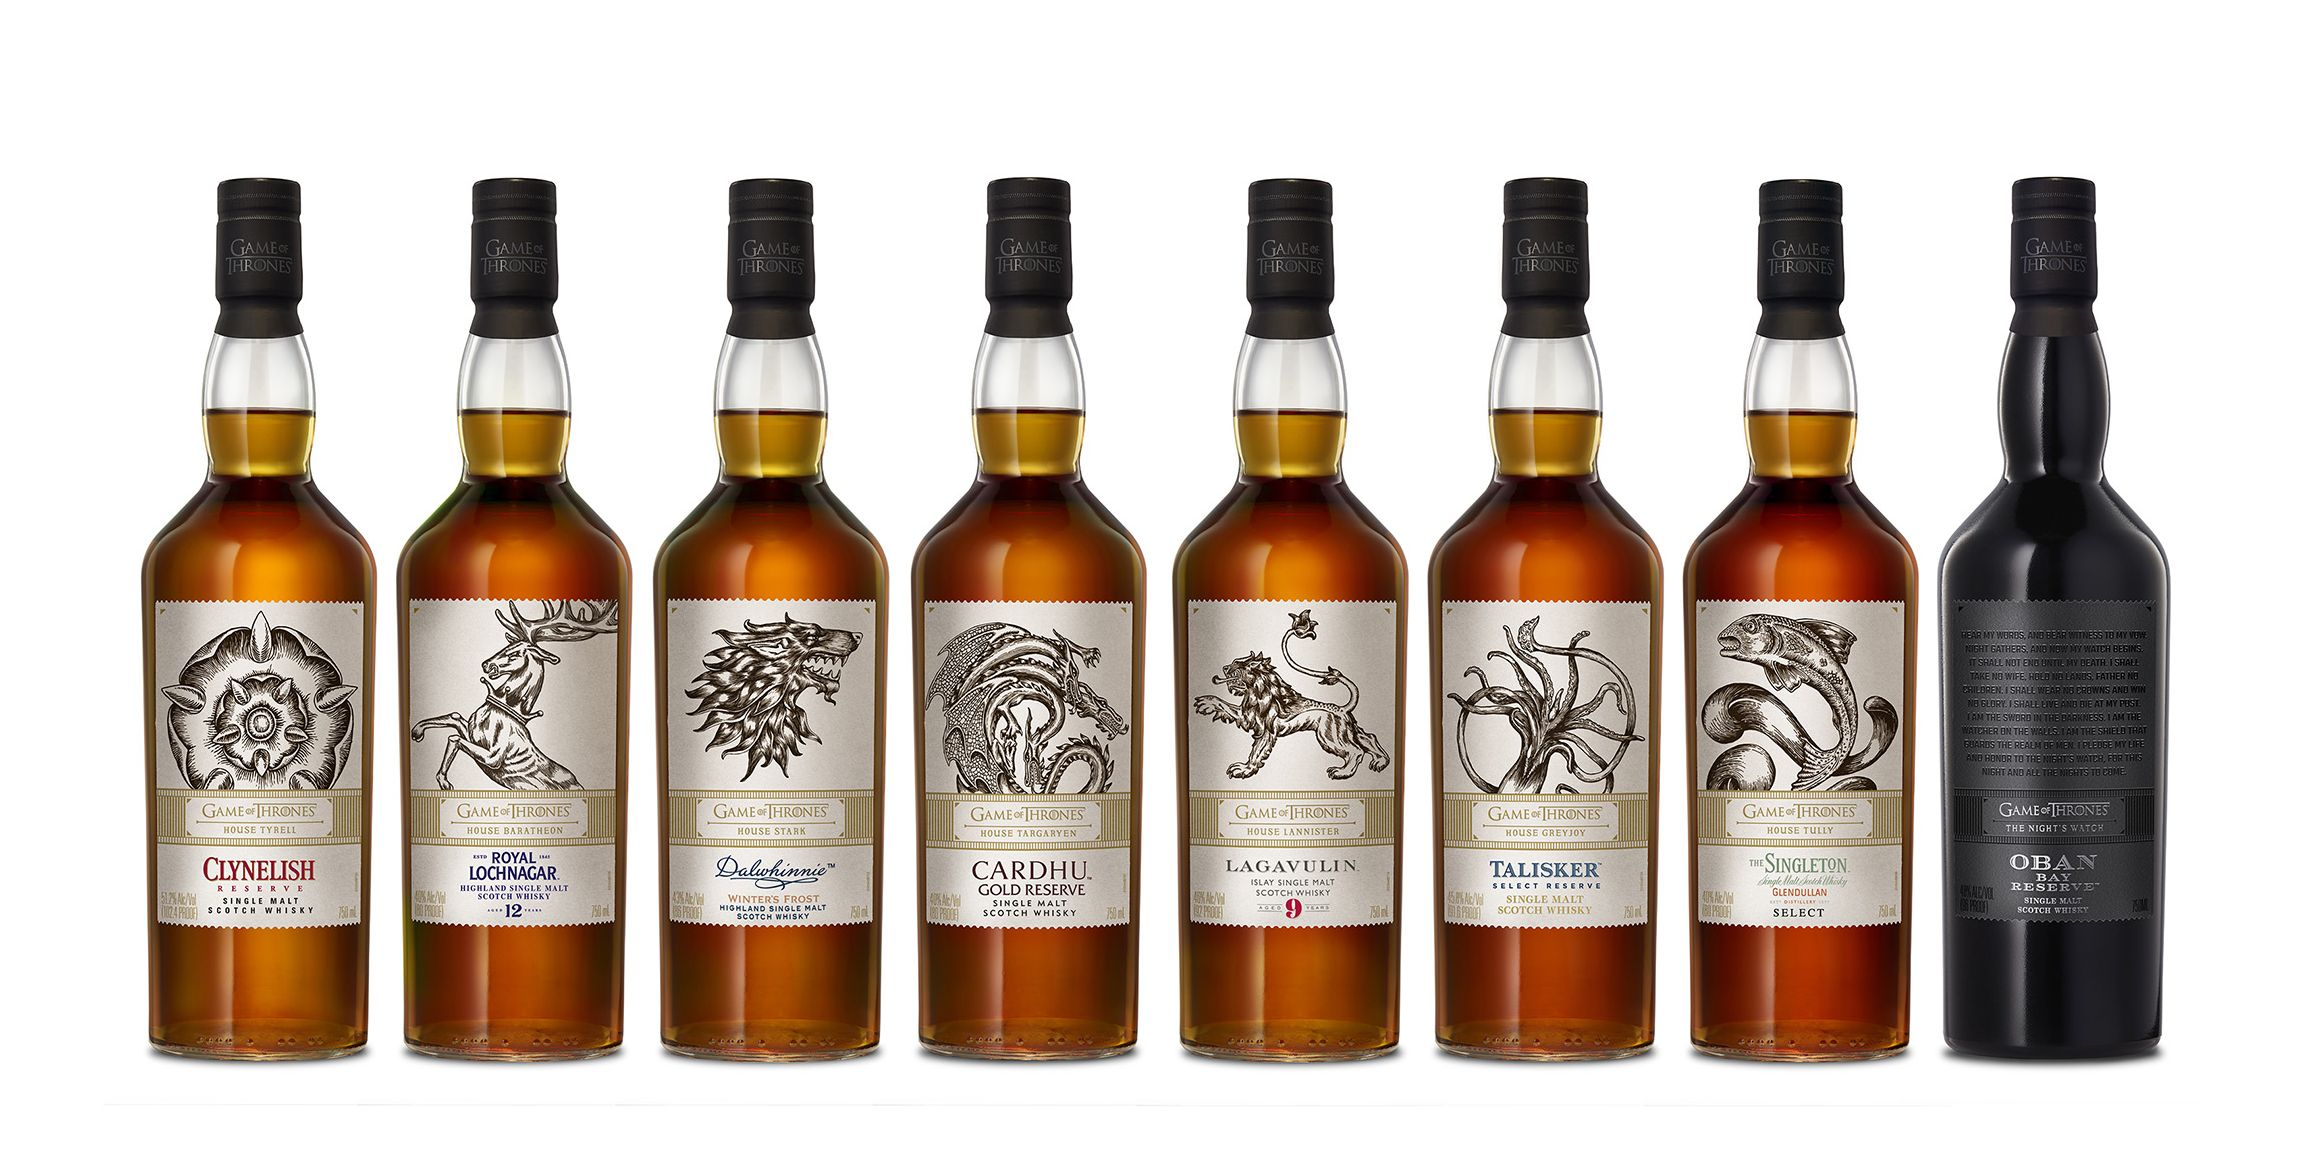 'Game of Thrones'Just Released 8 Scotch Whiskies, and There Goes Our Winter